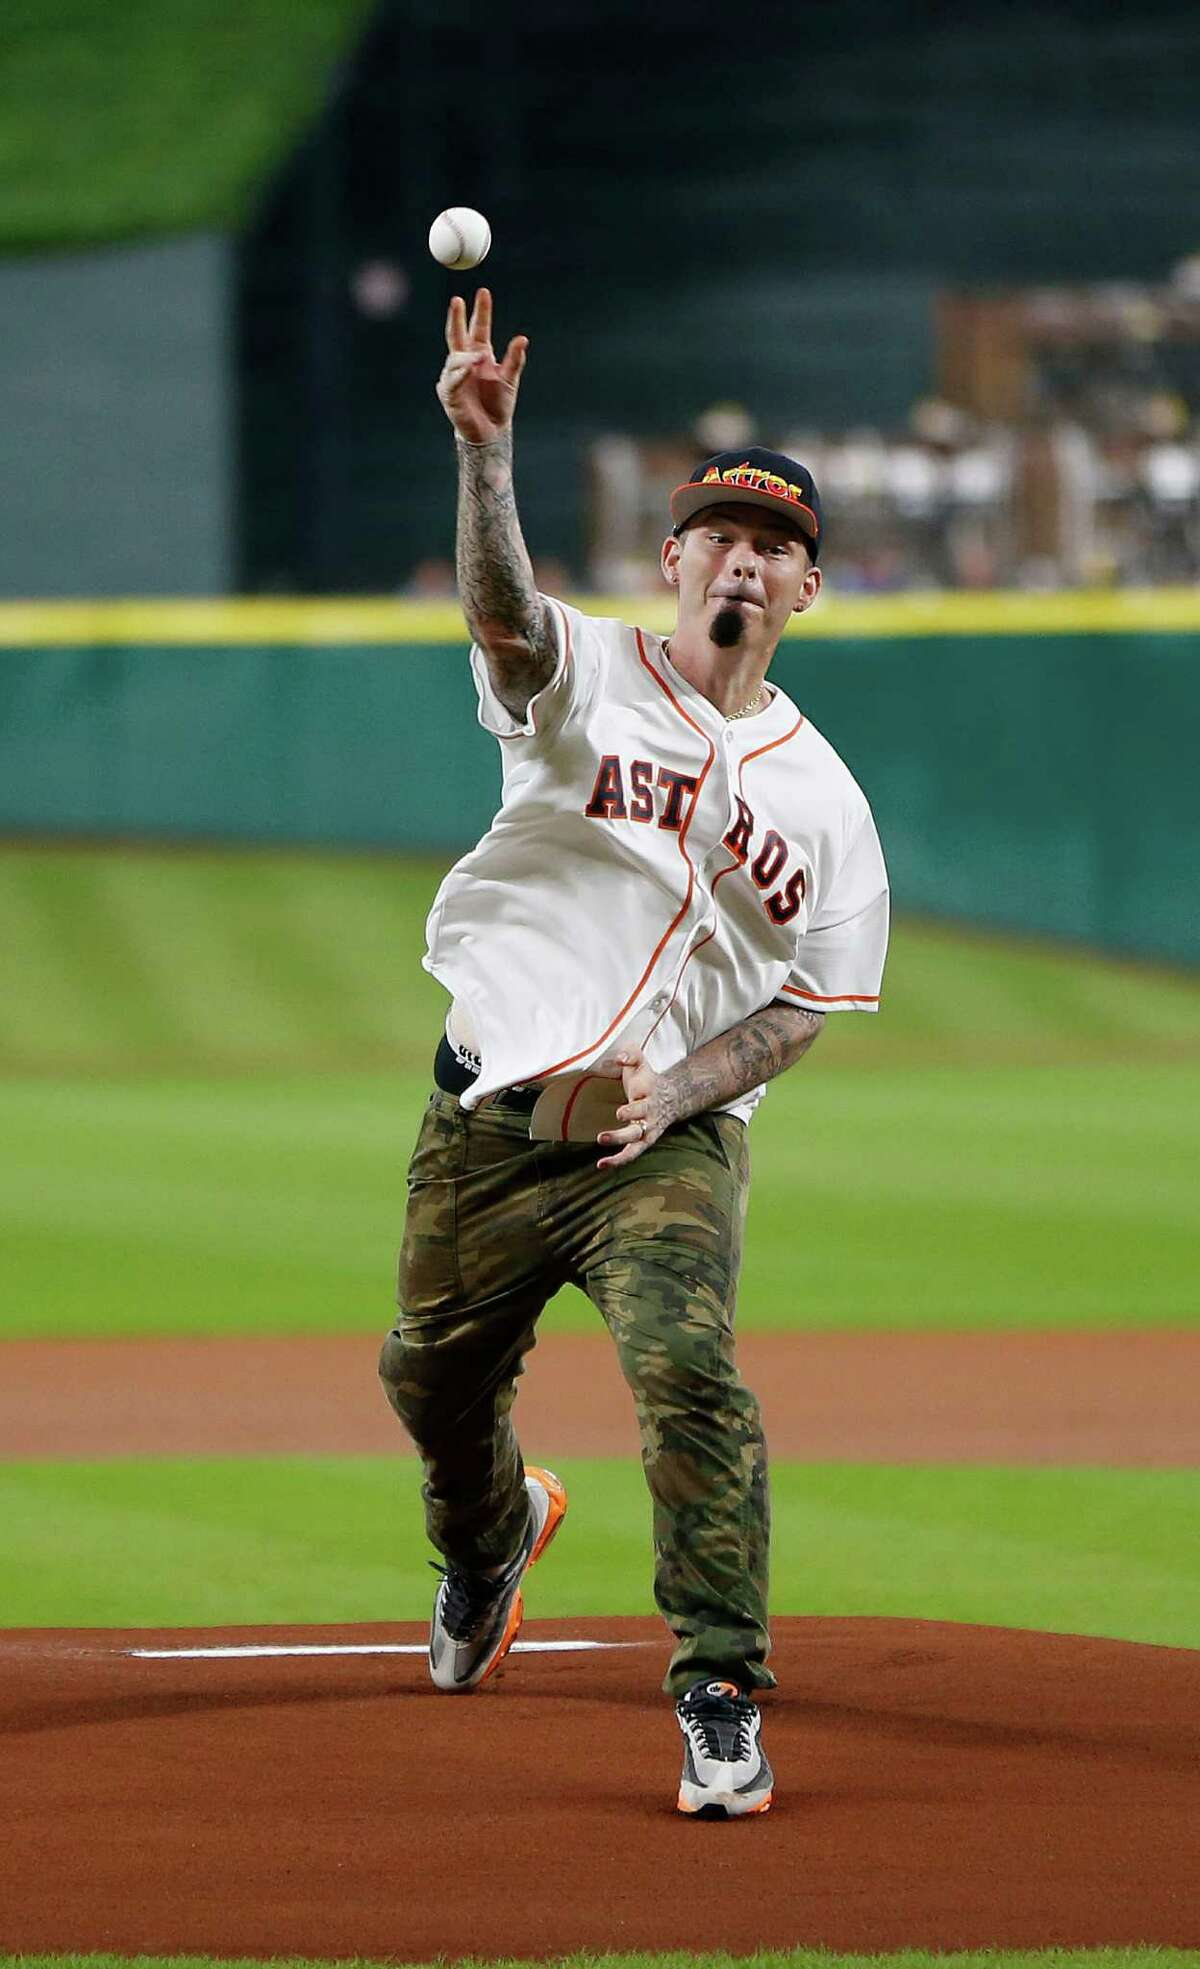 Rapper Paul Wall throws out the first pitch before the start of an MLB game at Minute Maid Park,Tuesday, Aug. 16, 2016, in Houston.